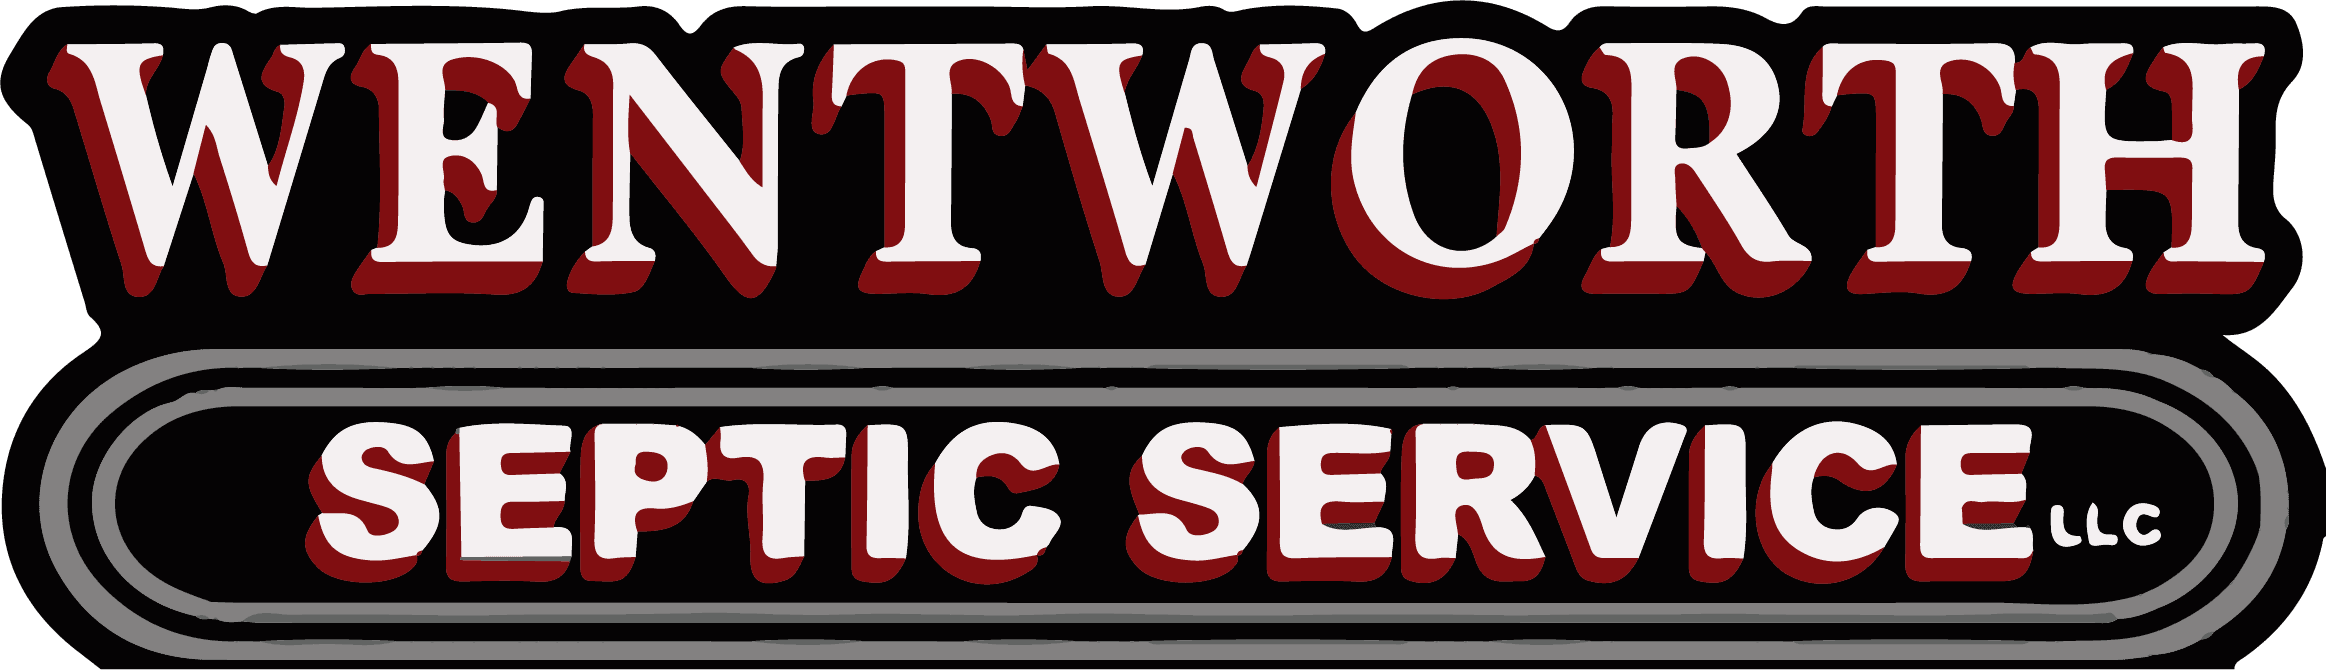 Wentworth Septic